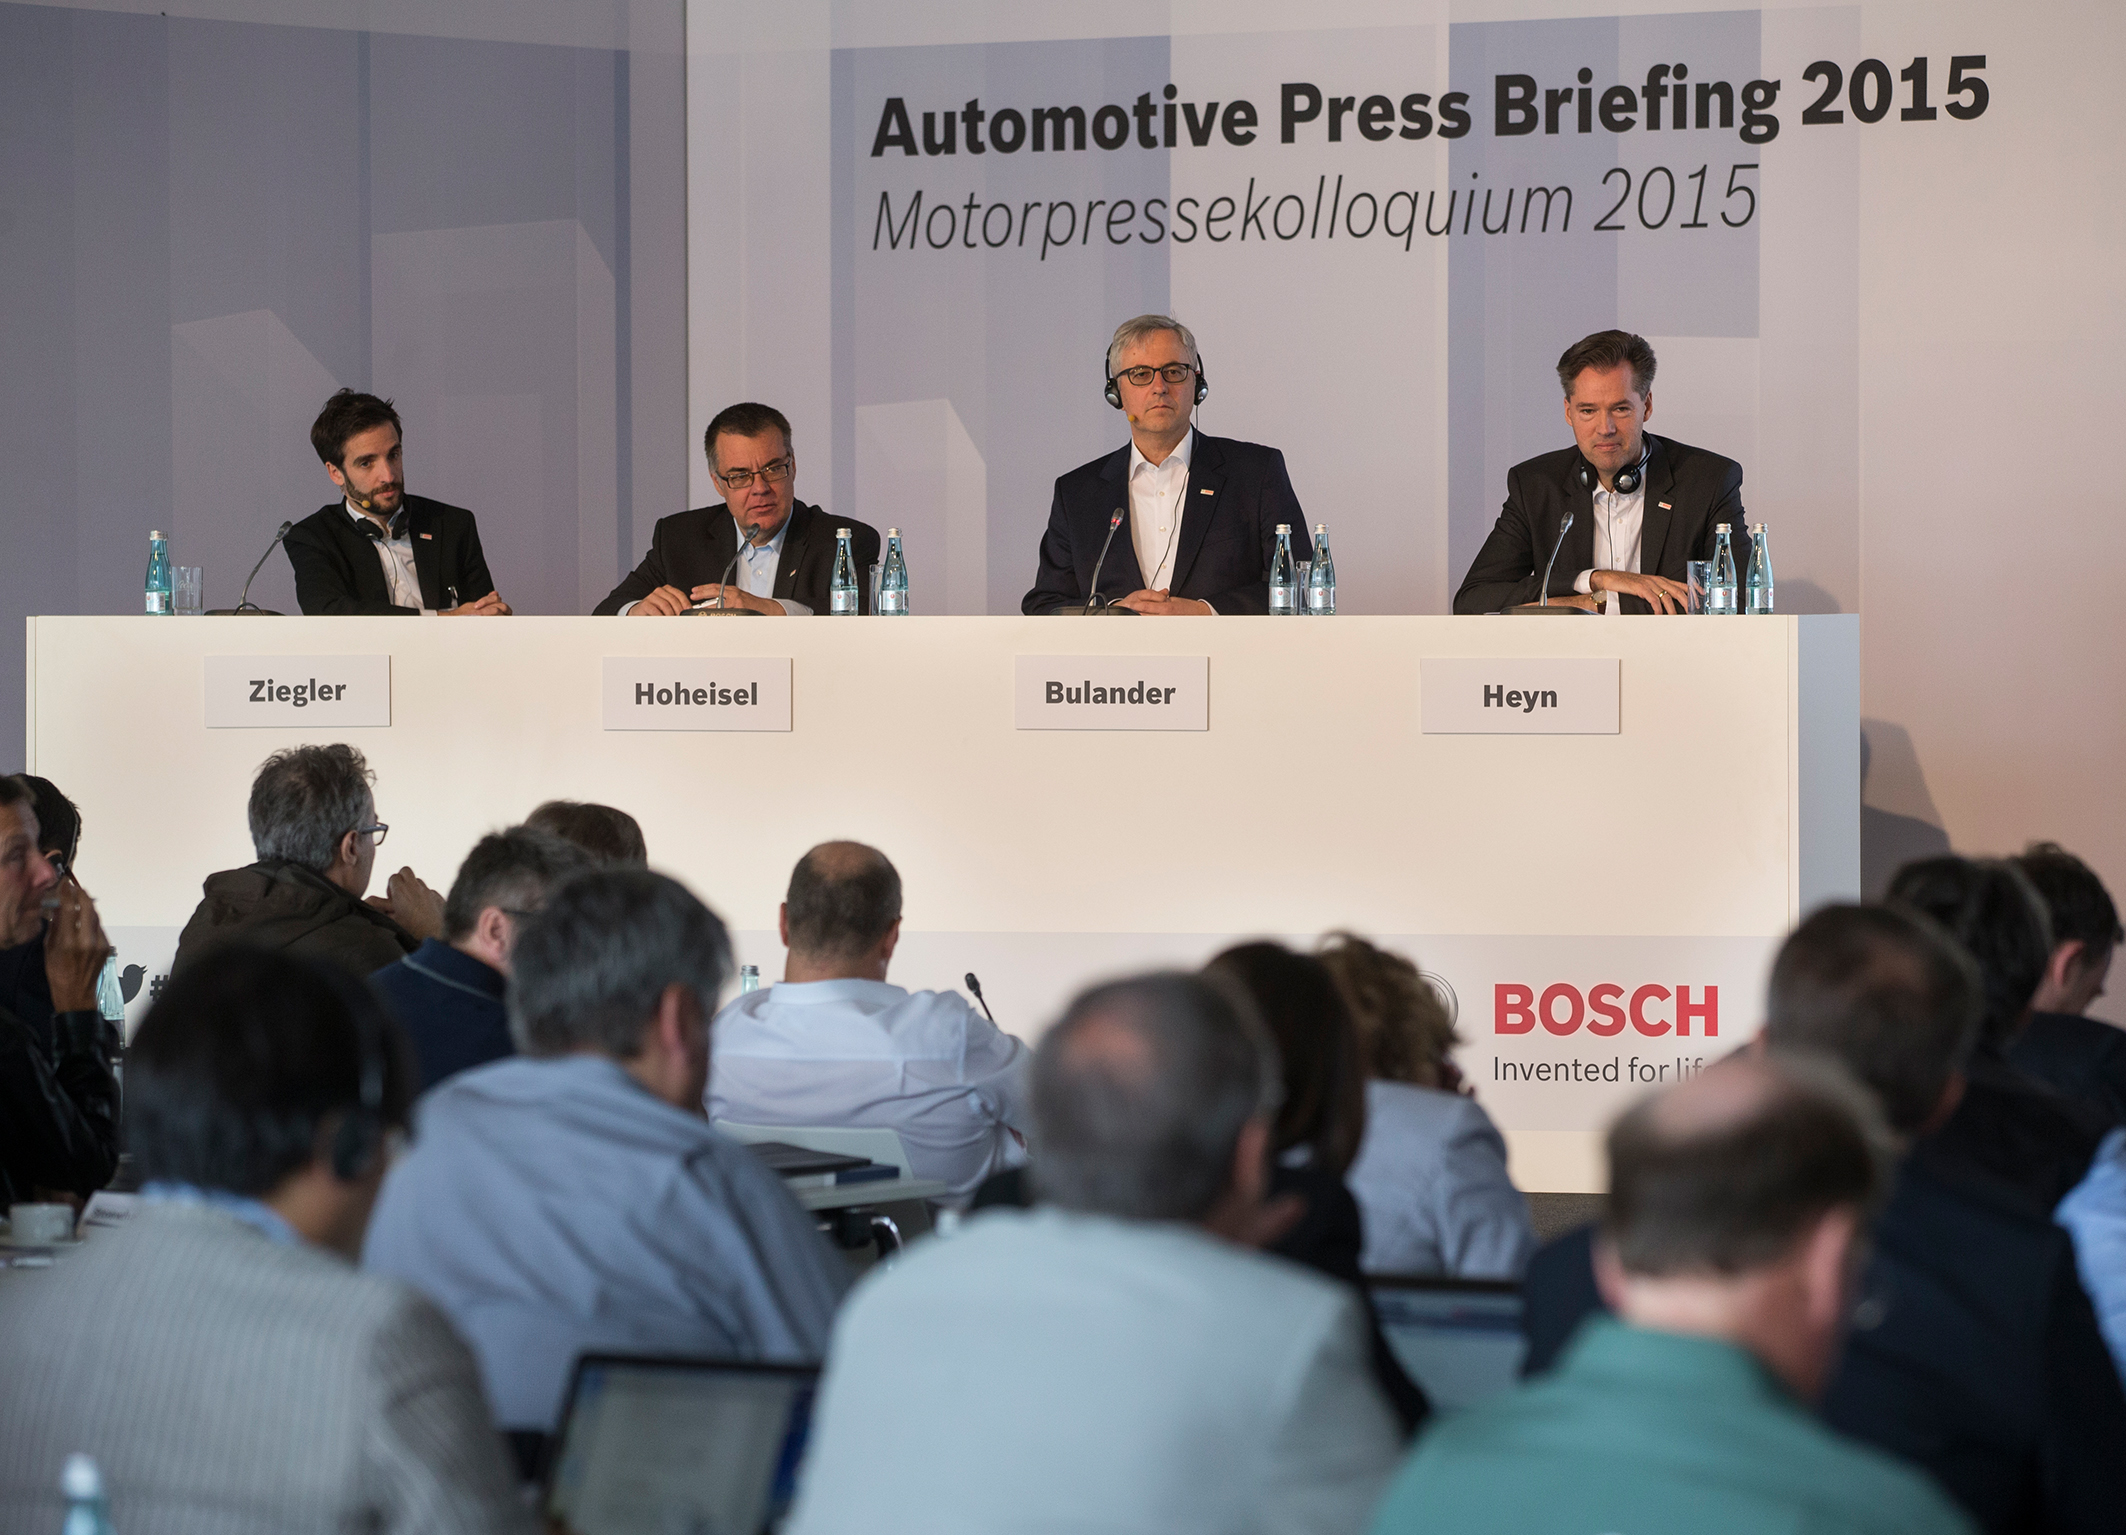 62<sup>nd</sup> International Automotive Press Briefing 2015